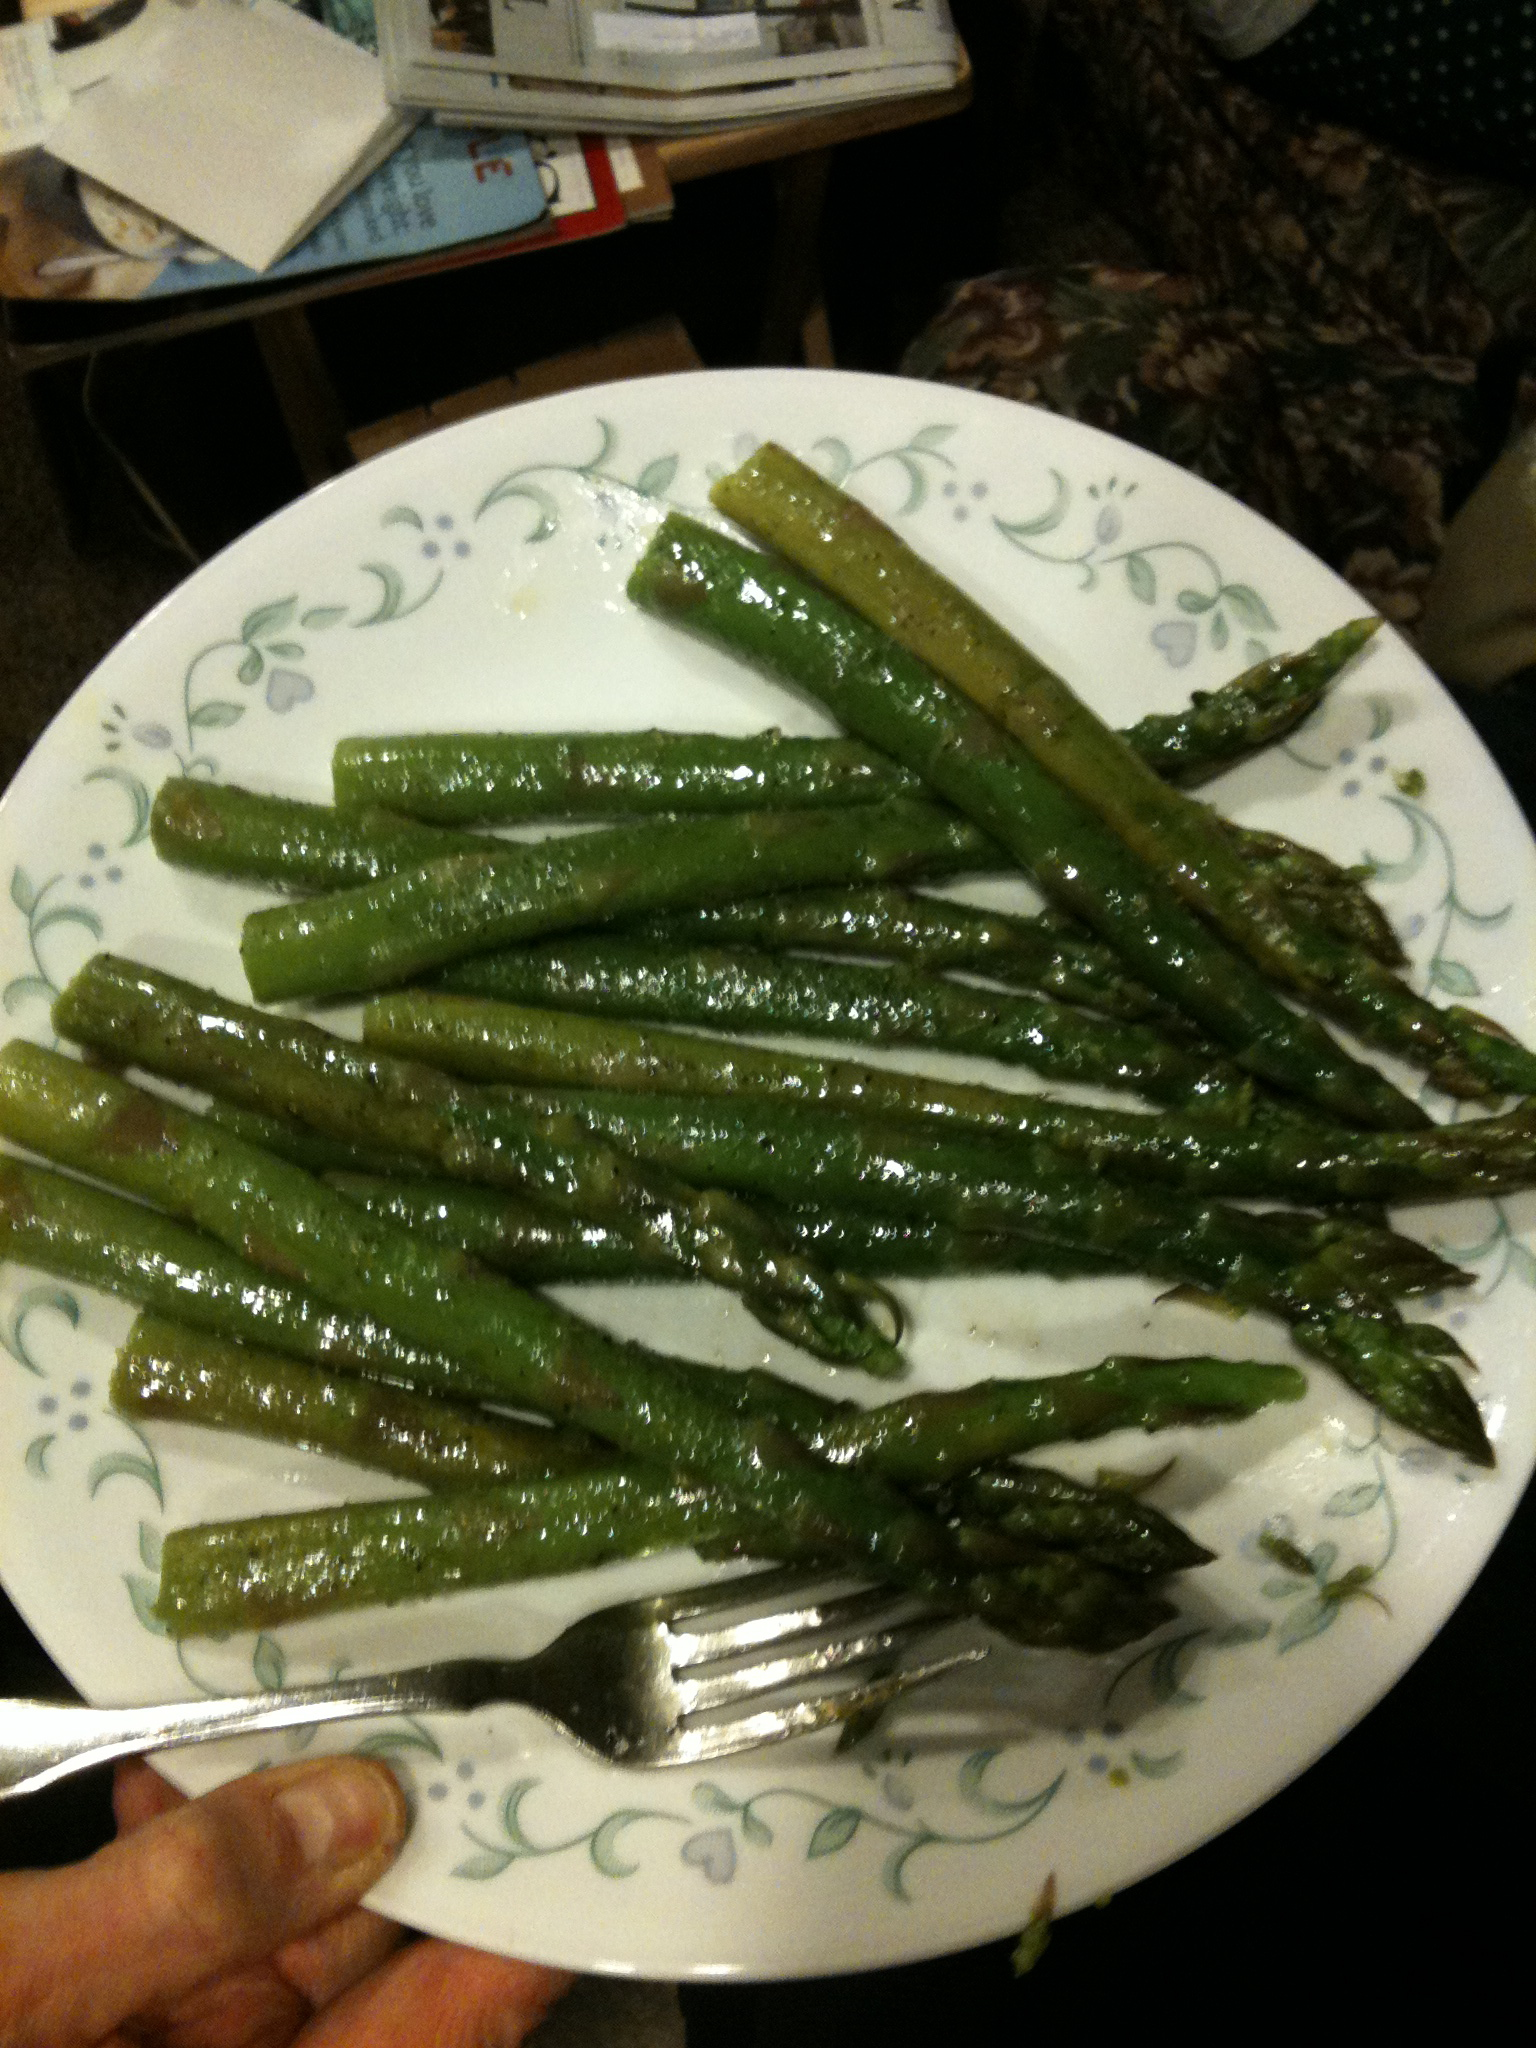 Parents house Milford, NH :: I came home to visit and my mom and I shared a plate of asparagus... I let her have the last few